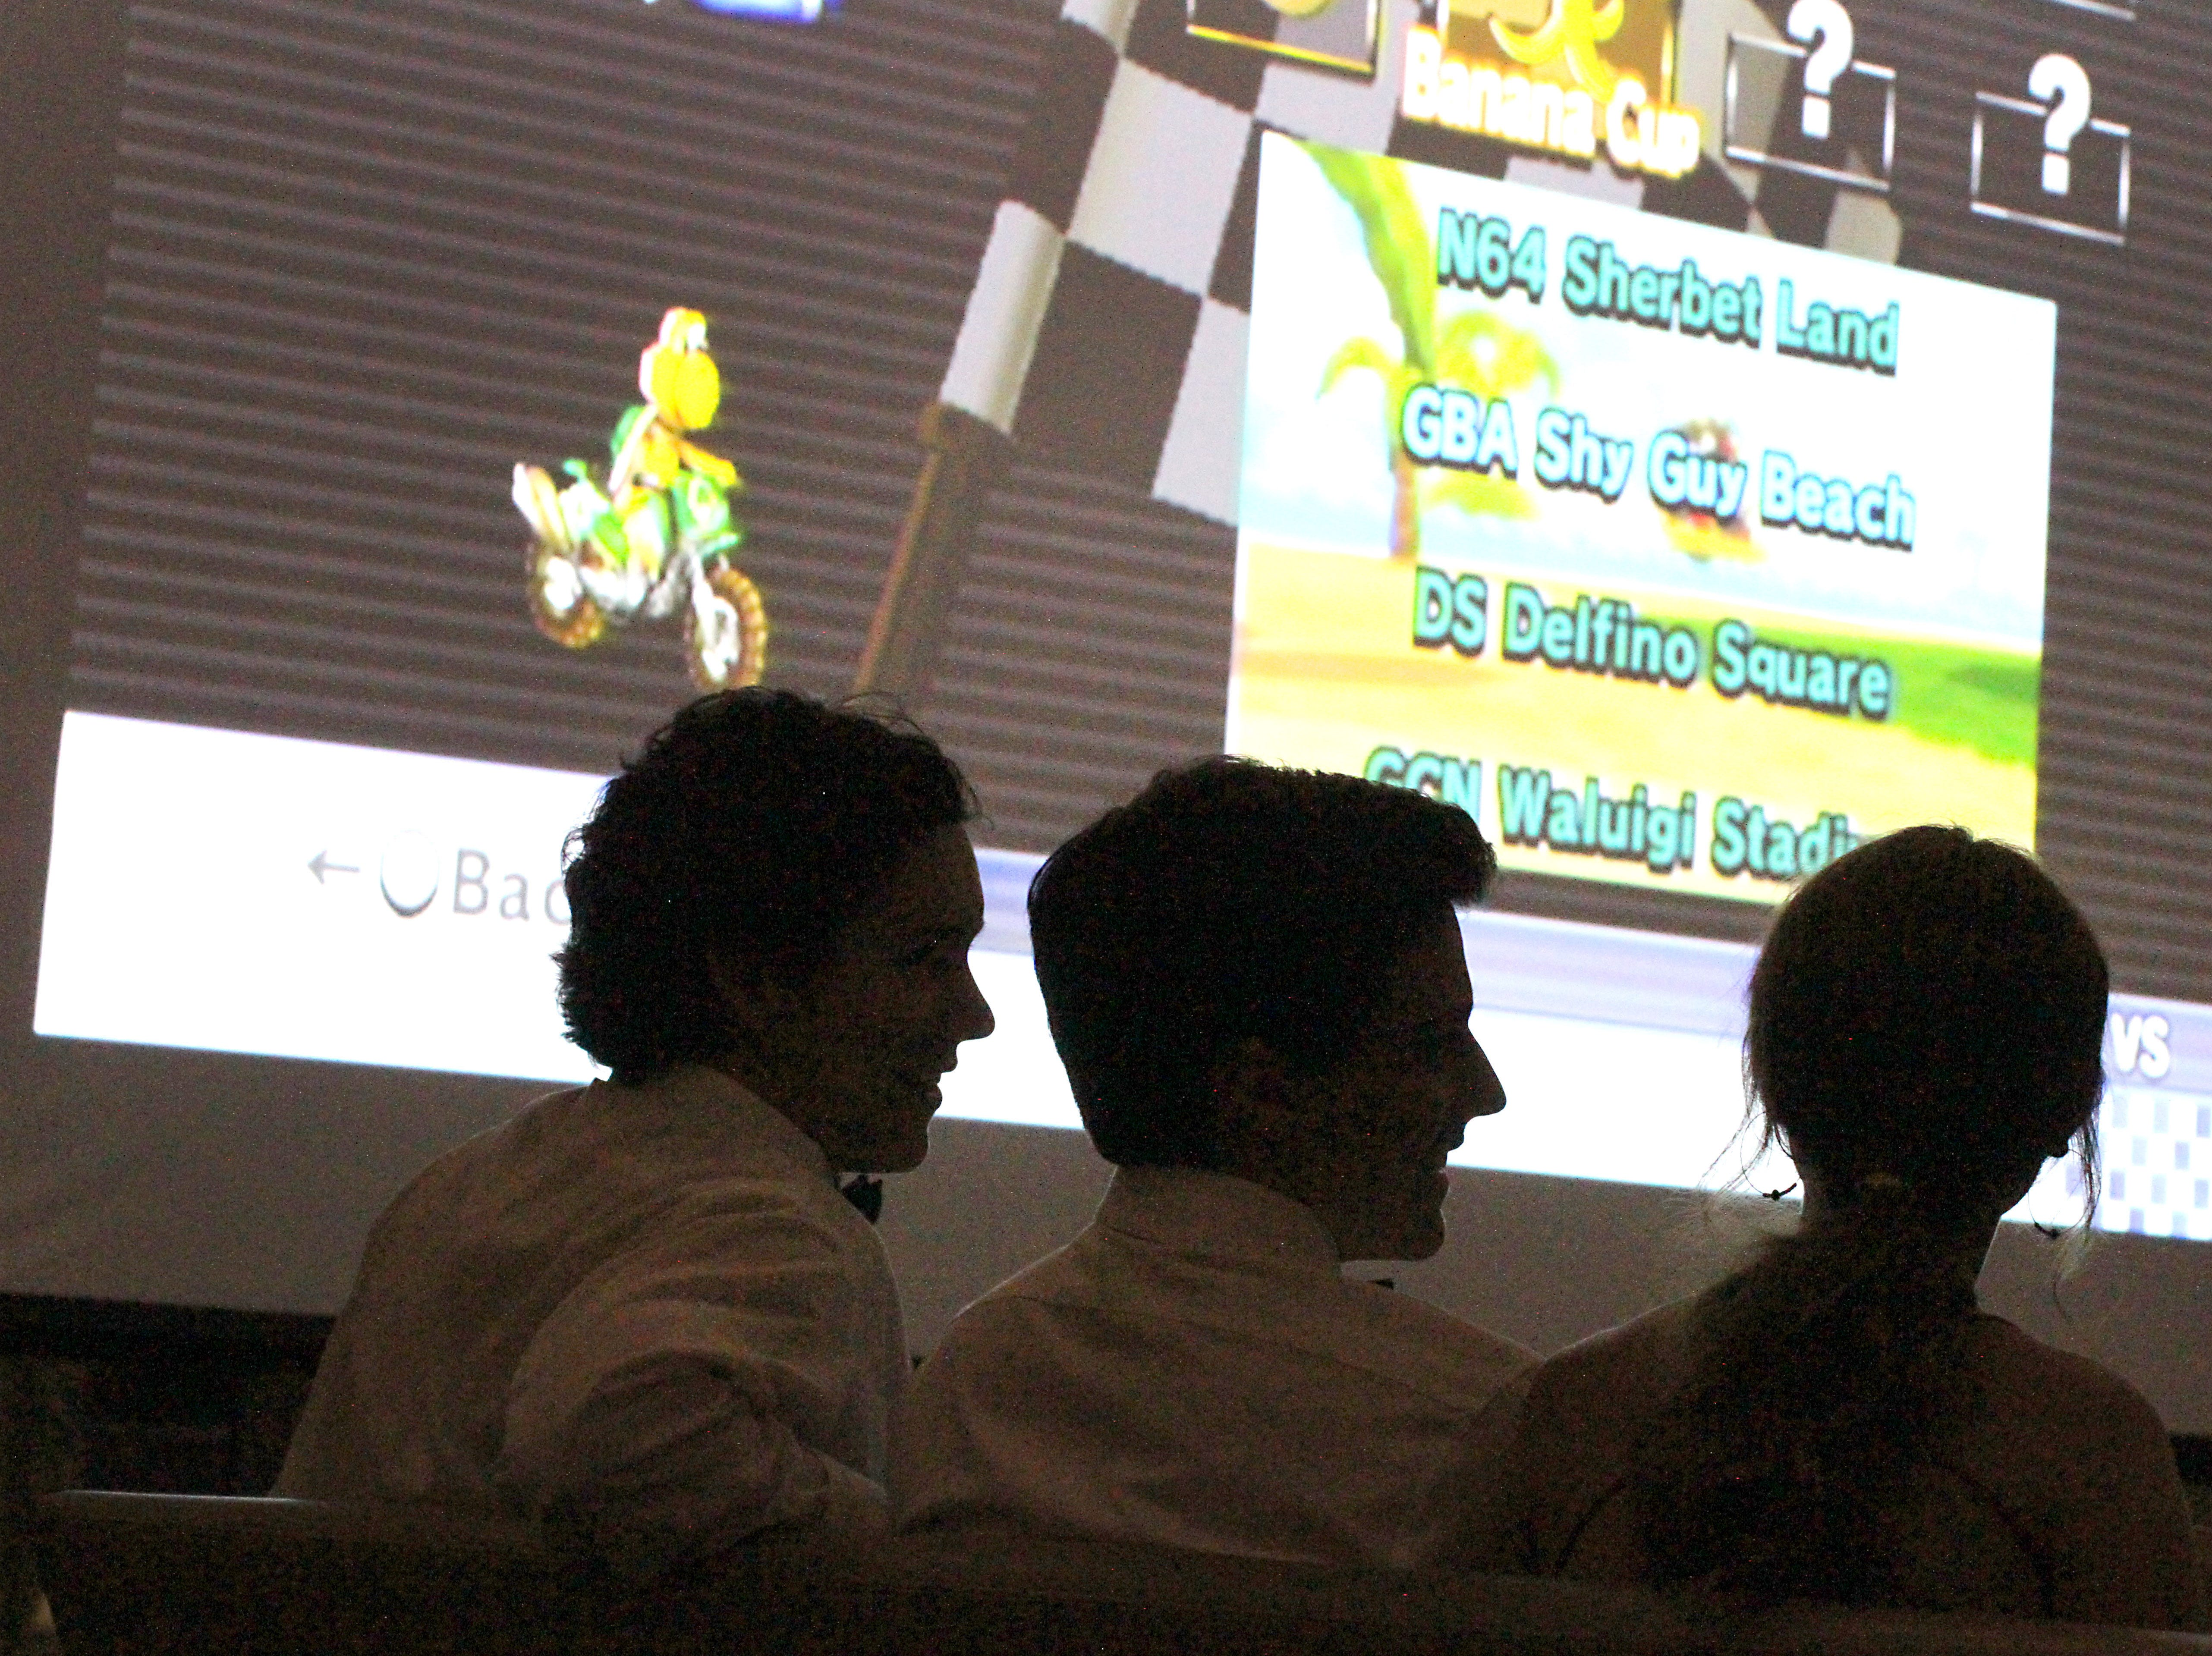 Joel Blocker / For the ColoradoanFort Collins High School seniors, from left, James Donahue, Will Lamperes and Savannah Sanford, take a break from dancing to play video games during the Fort Collins High School prom held at Canvas stadium Saturday night.